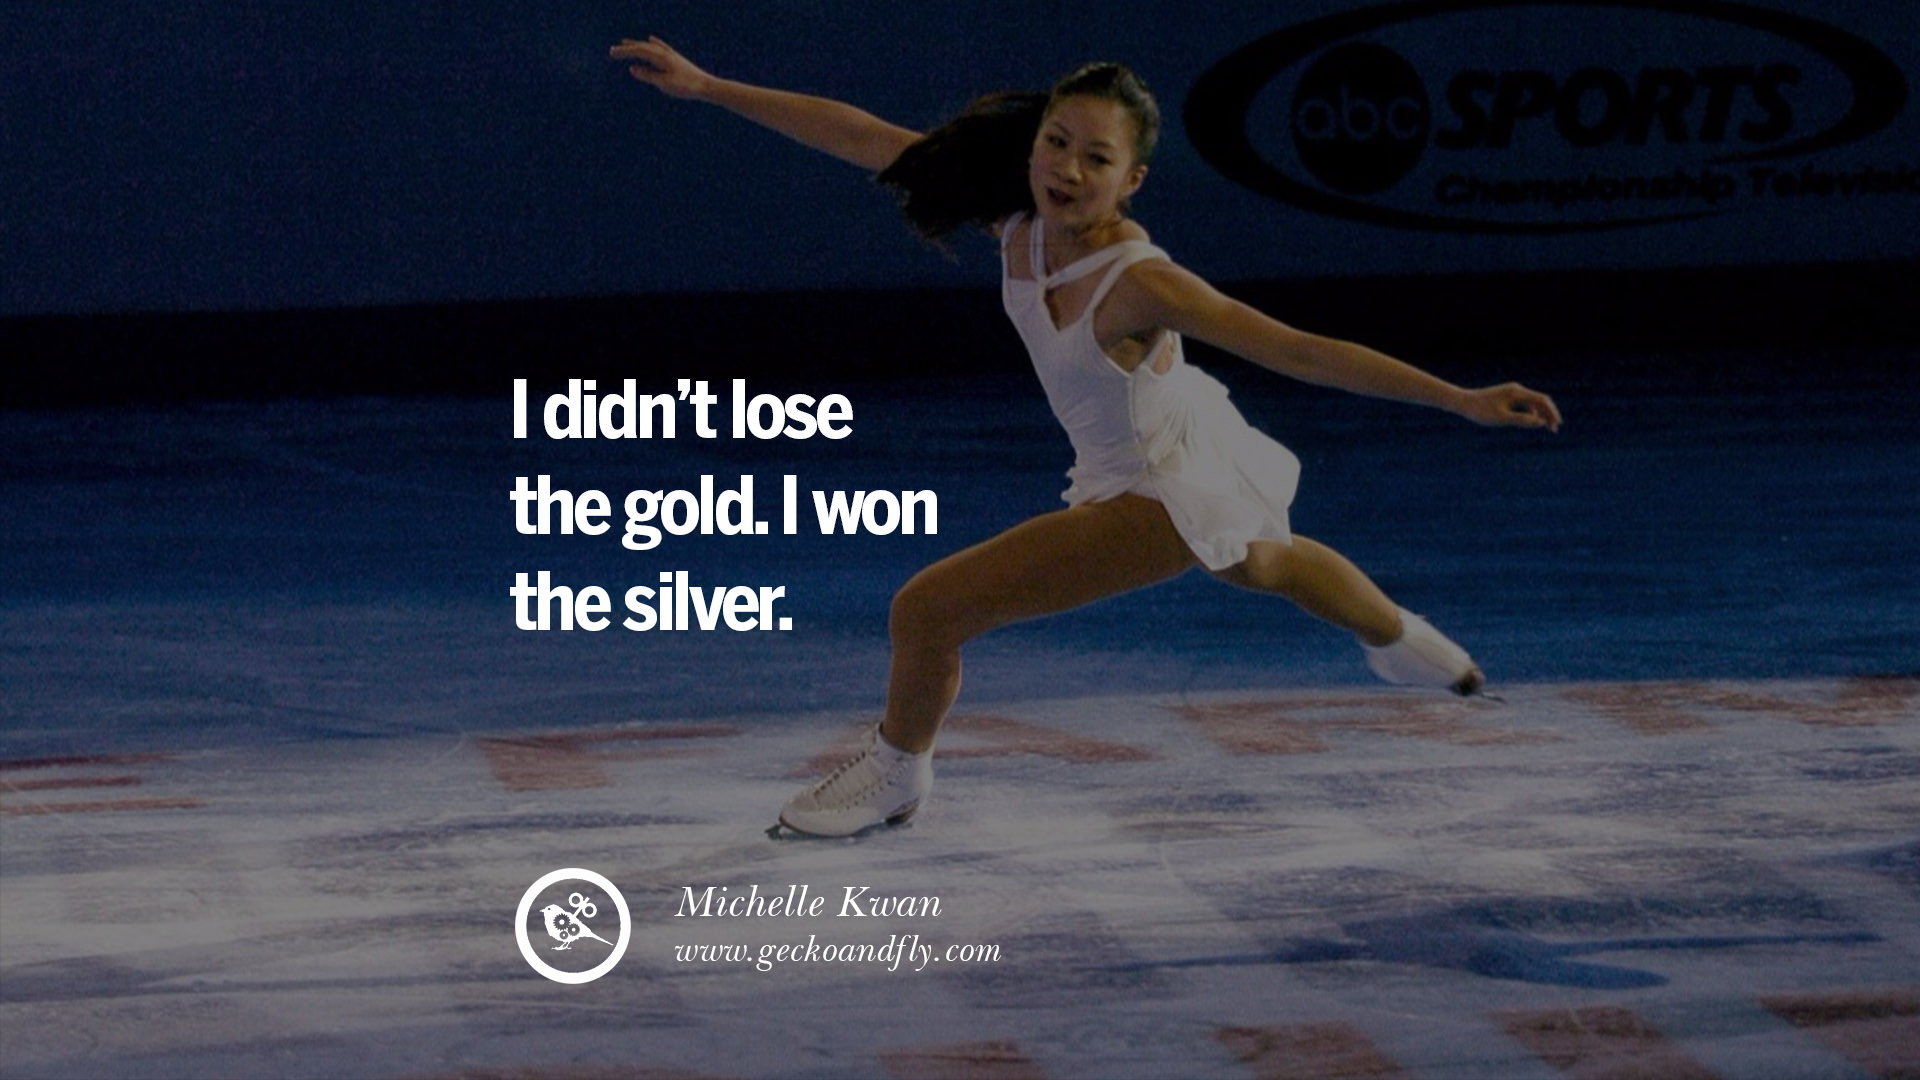 Motivational Quotes For Athletes Women: 31 Inspirational Quotes By Olympic Athletes On The Spirit